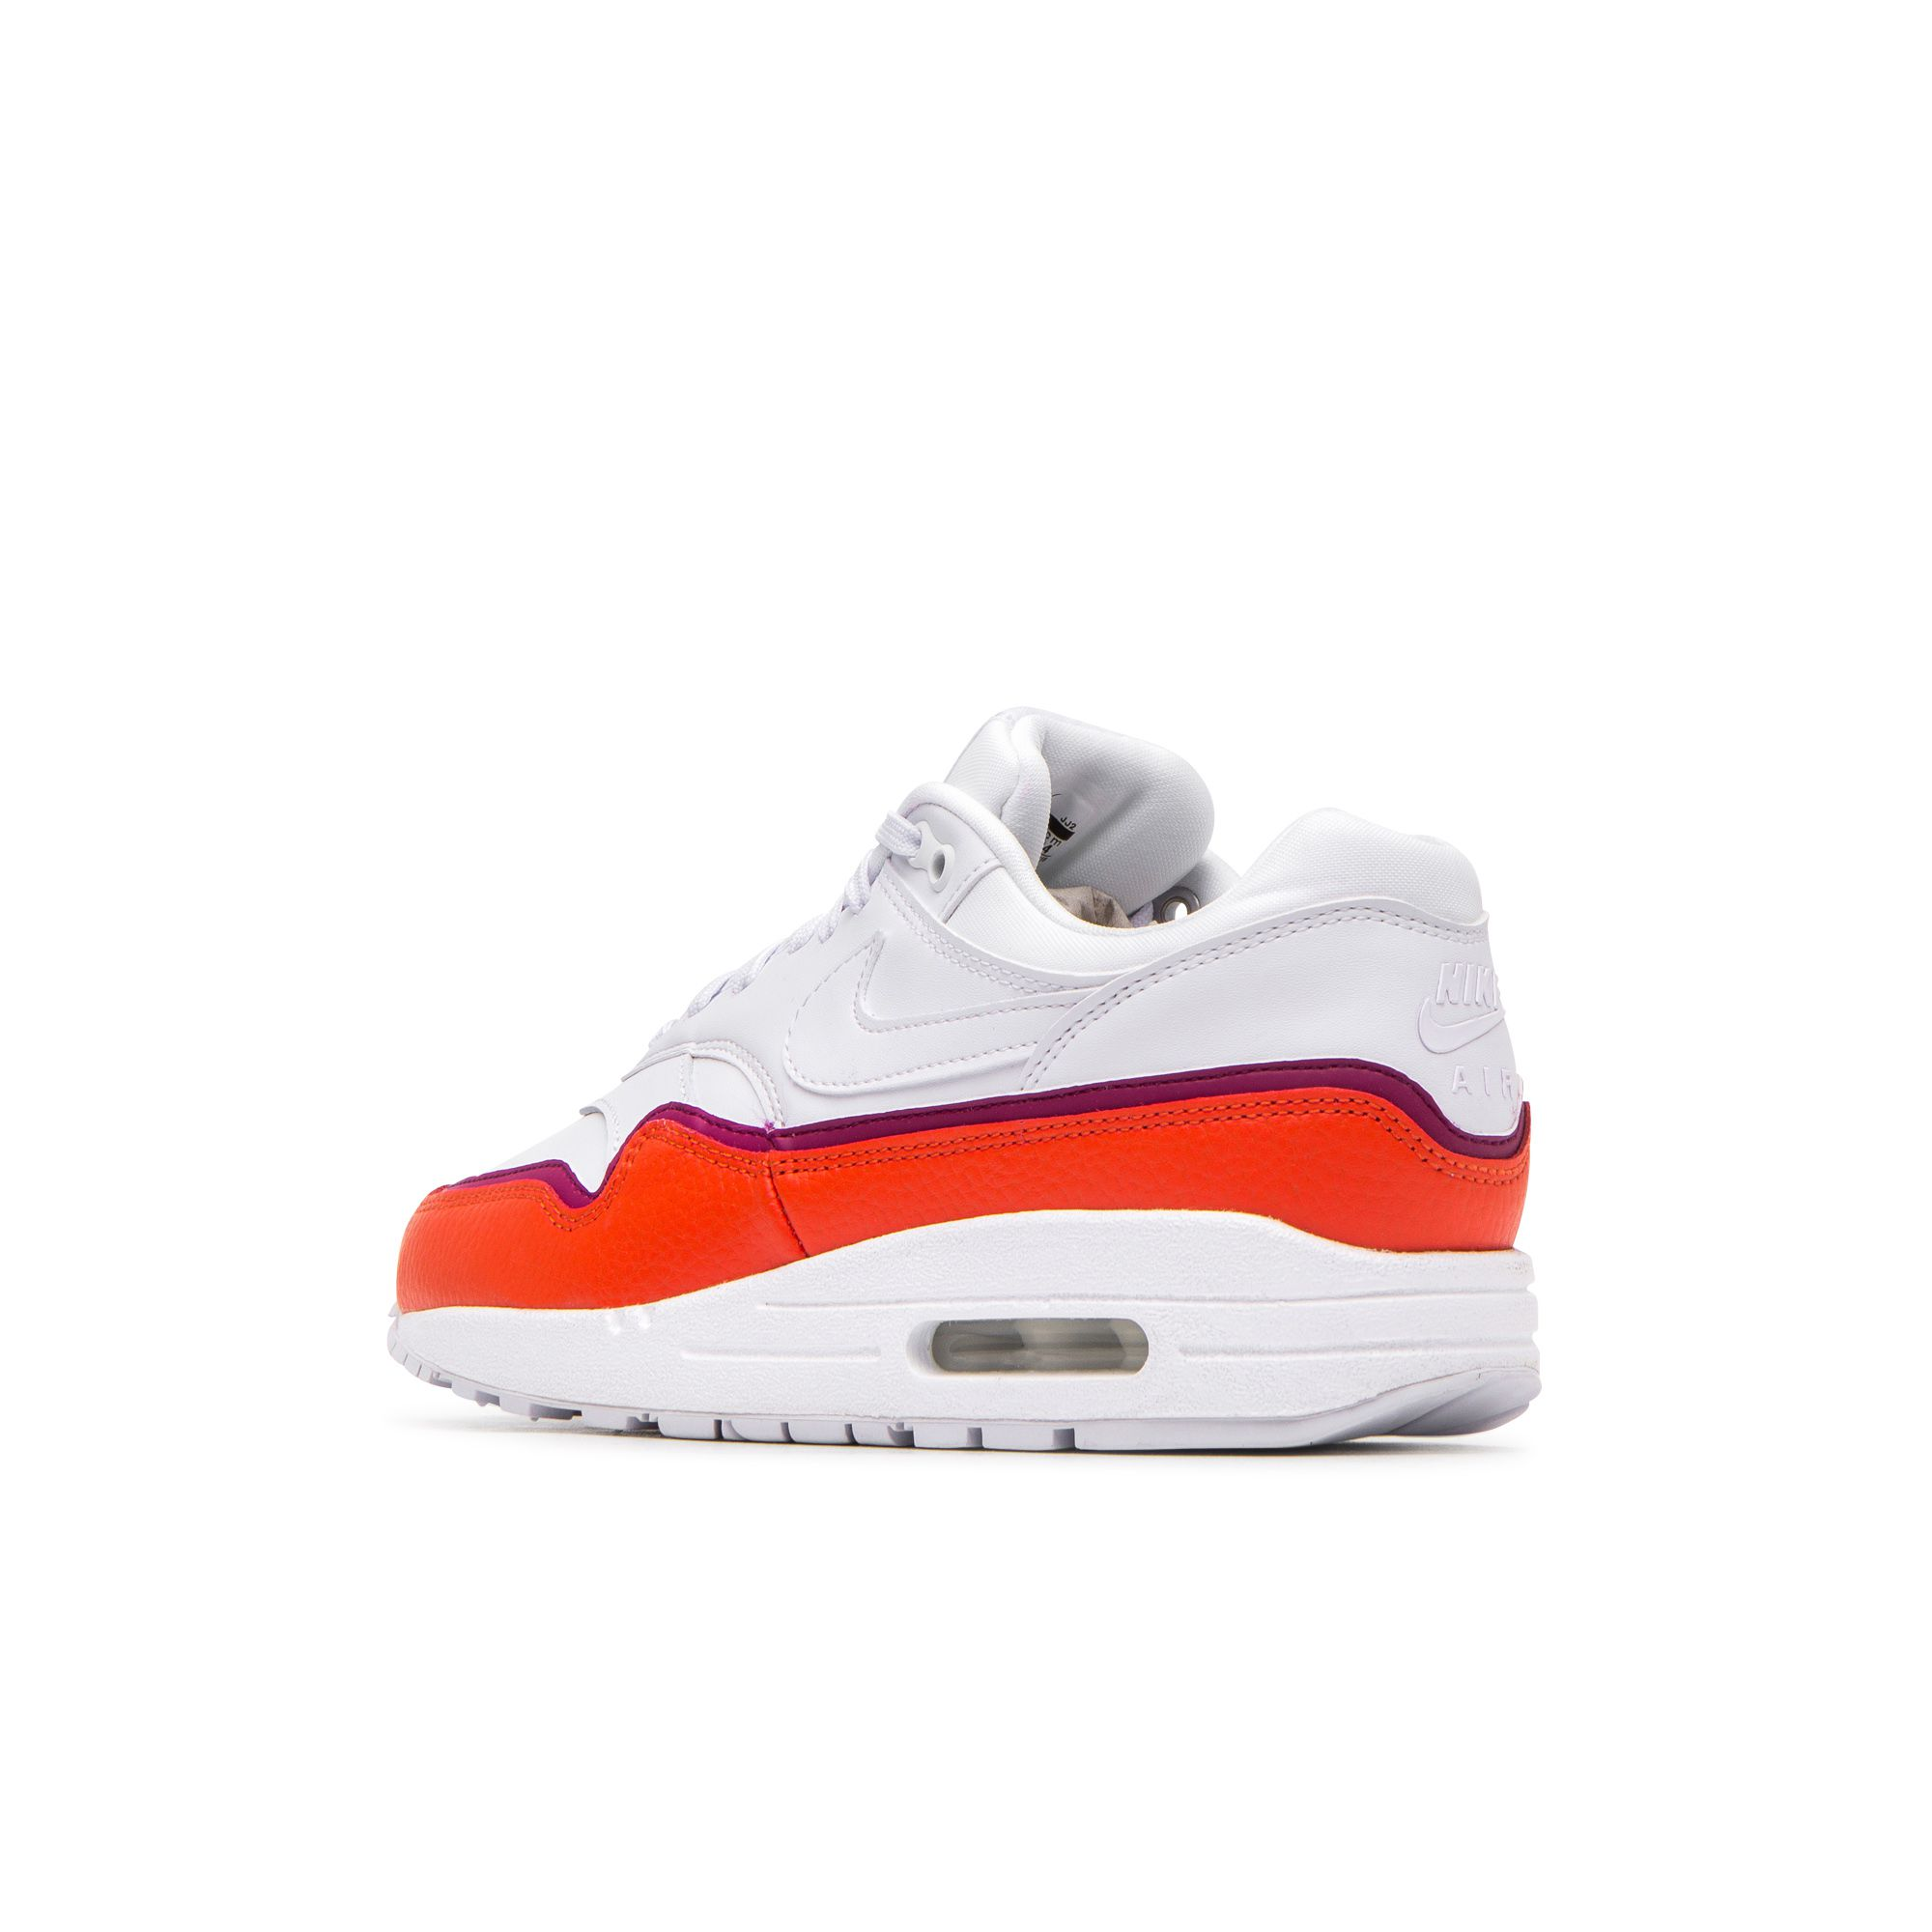 Nike Air Max 1 SE Overbranded